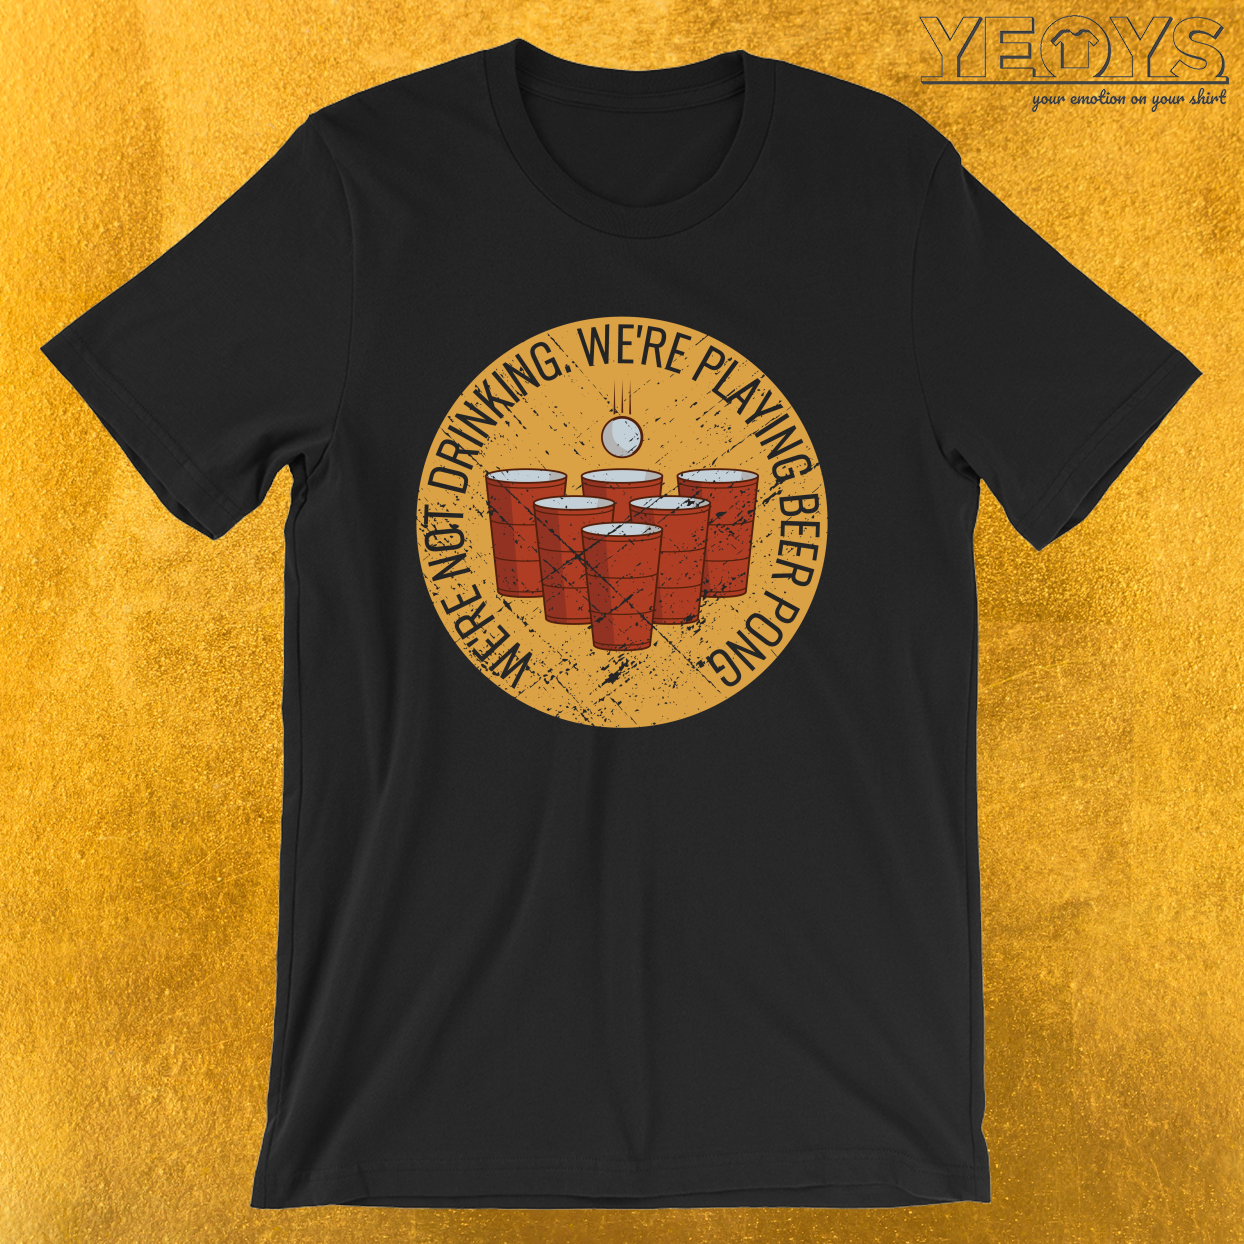 We're Not Drinking We're Playing Beer Pong – Funny Beer Pong Tee